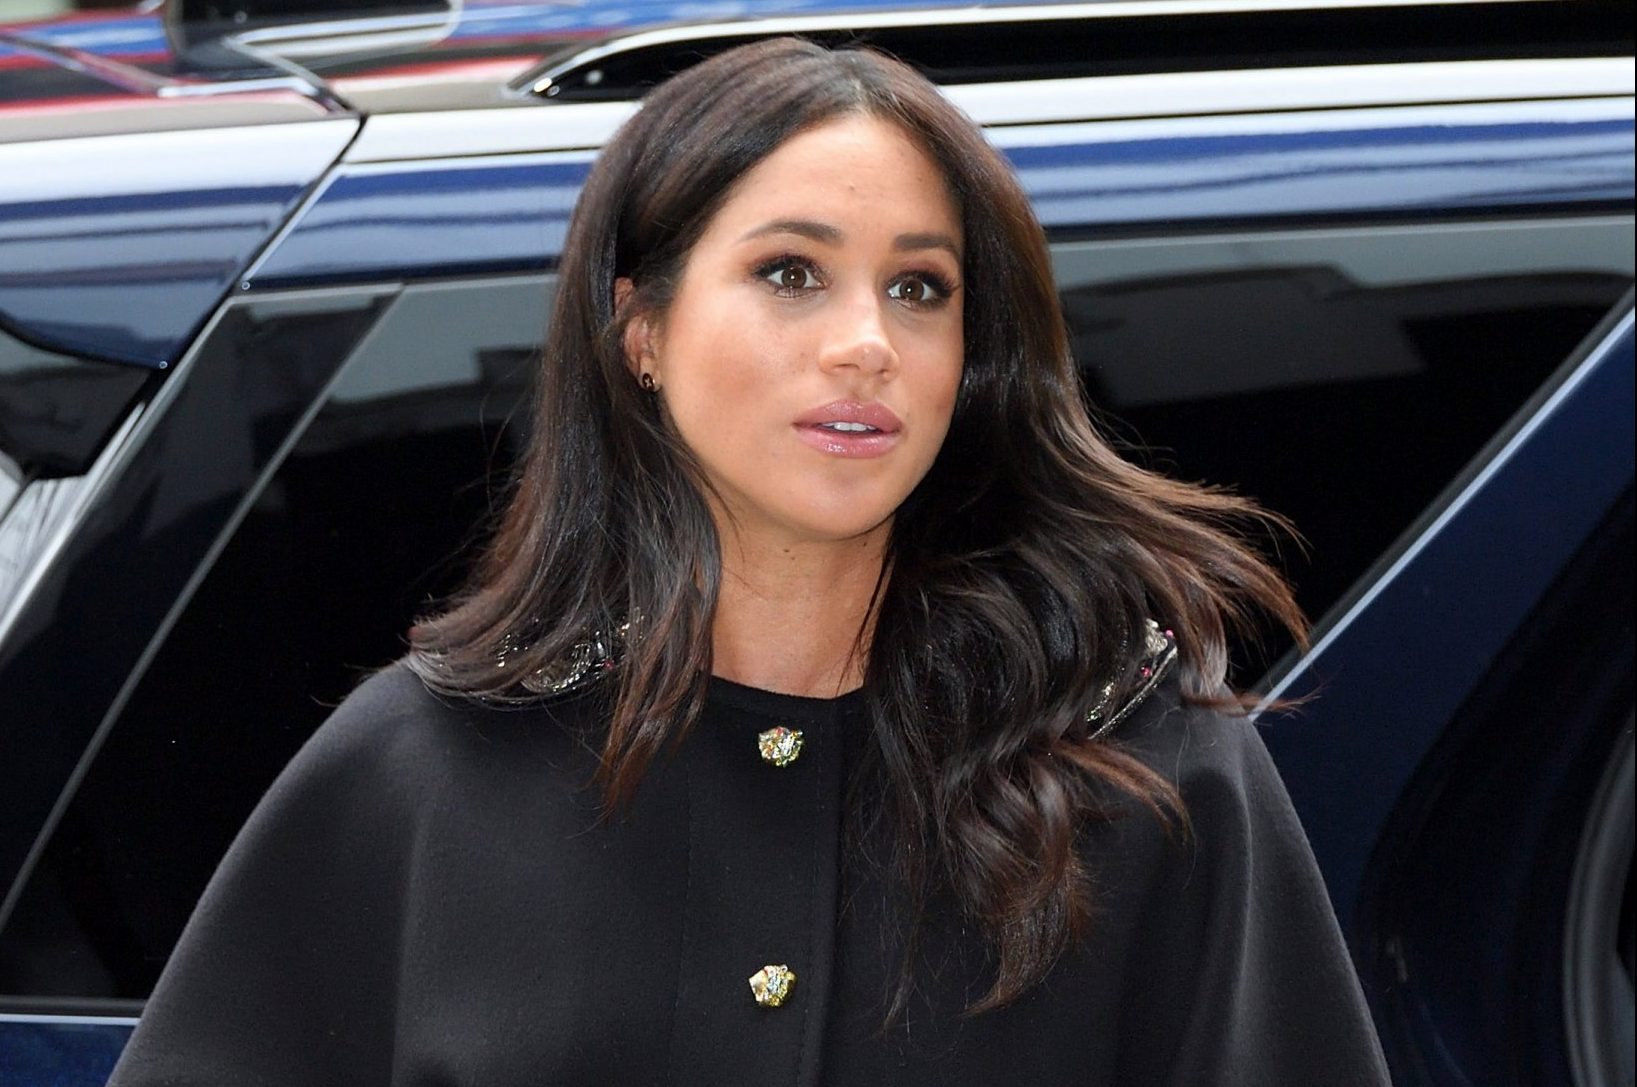 LONDON, ENGLAND - MARCH 19: Meghan, Duchess of Sussex arrives at New Zealand House to sign the book of condolence after the recent terror attack which saw at least 50 people killed at a Mosque in Christchurch on March 19, 2019 in London, England. (Photo by Karwai Tang/WireImage)